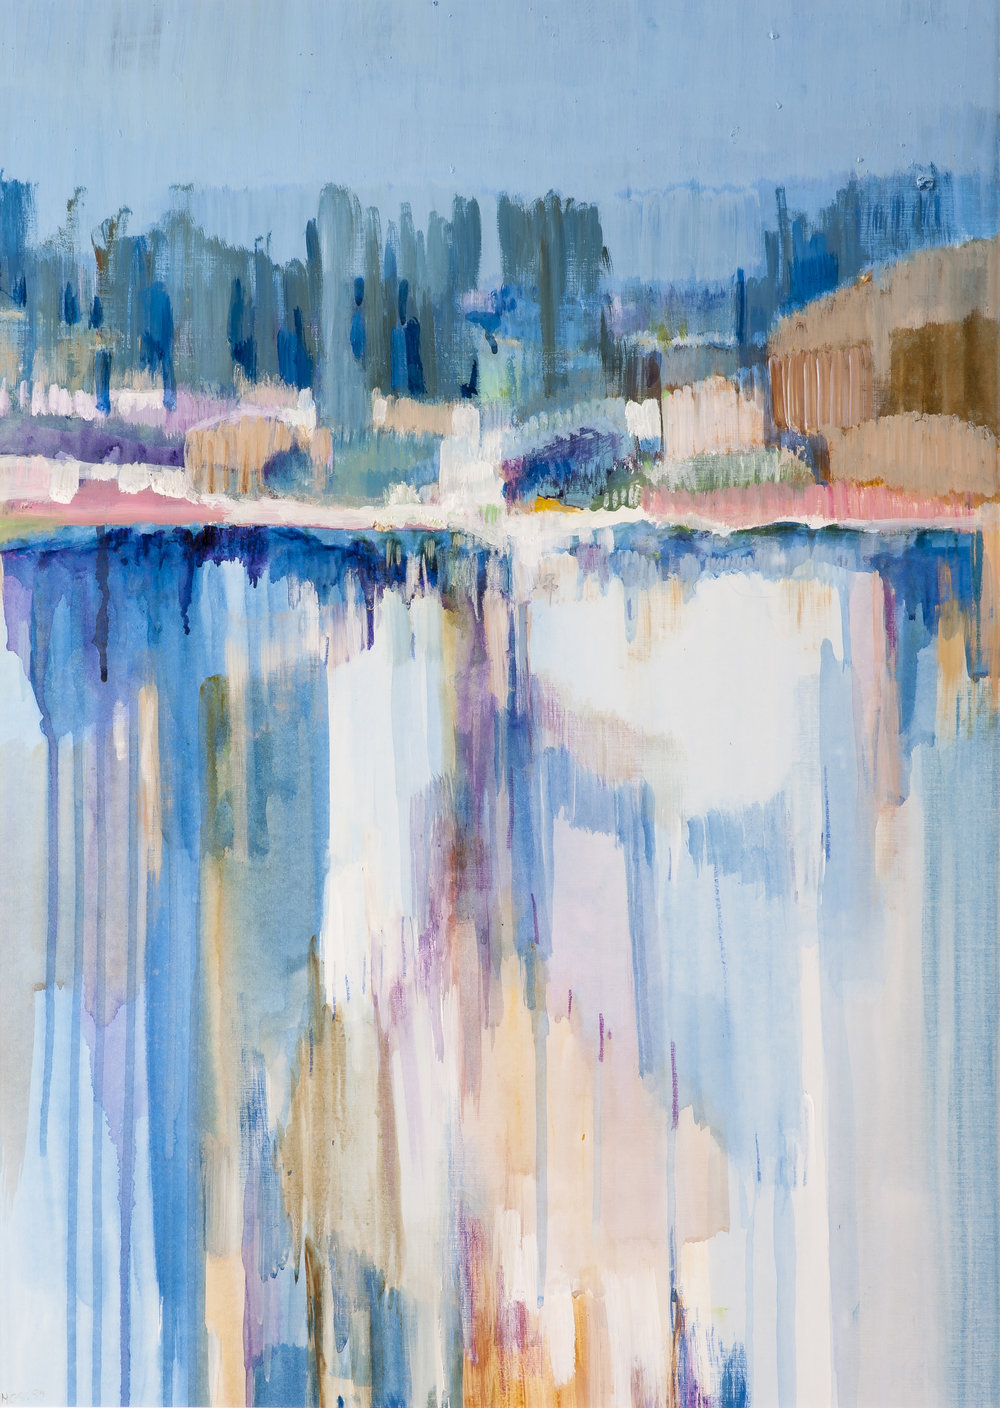 Helen Grey-Smith,Forestry Dam, 1985, acrylic, 67 x 47 cm. Collection of Bankwest / Commonwealth Bank of Australia, Perth. Photograph by Simon Cowling. Courtesy Grey-Smith Estate.